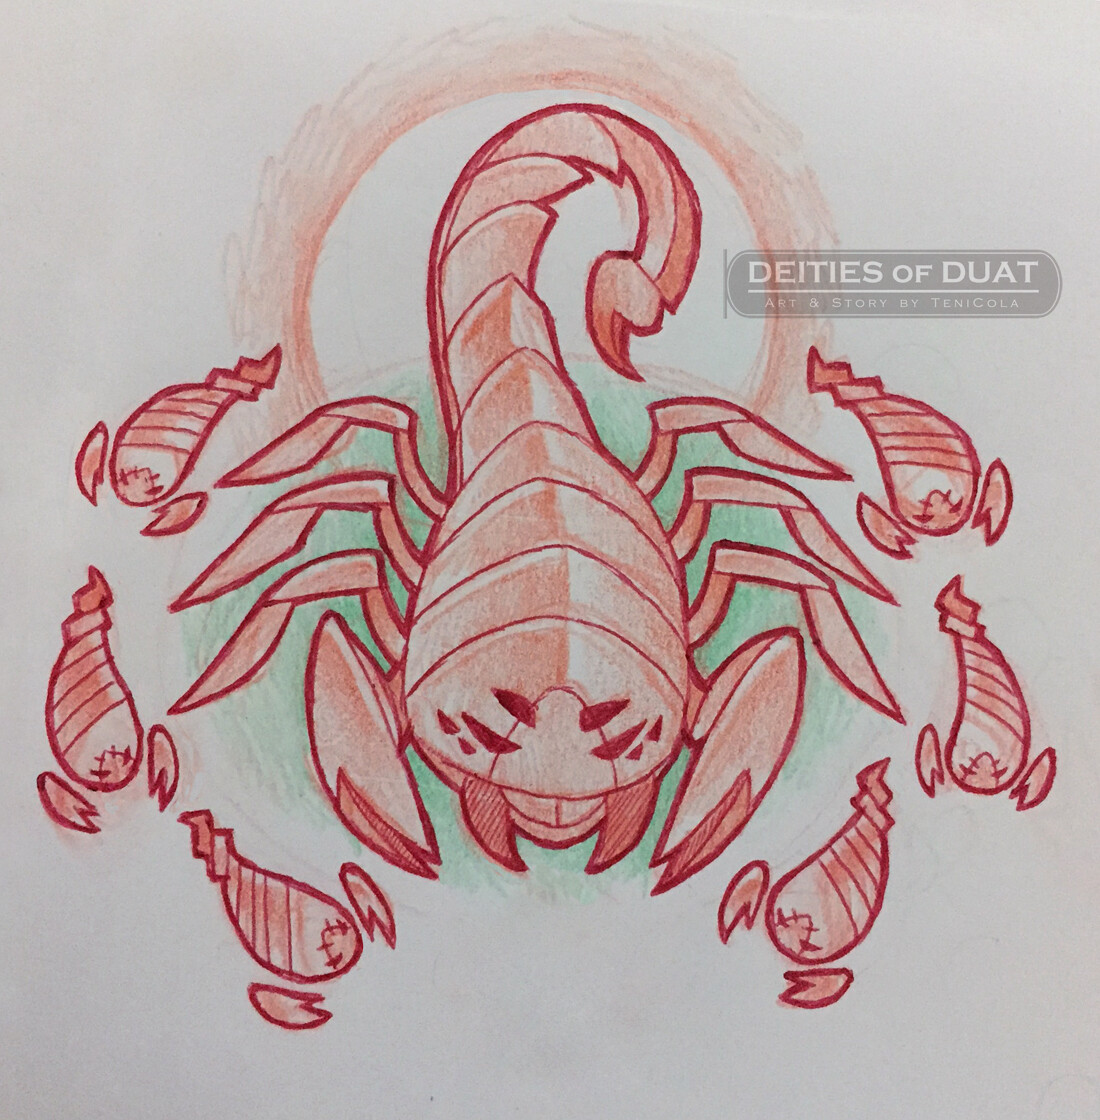 THE SEVEN SCORPIONS – Large demon scorpions who were the Guardians of Isis. The scorpions are all regarded as female and were named: Petet, Tjetet, Matet, Mesetet, Masetetef, Befen, & the largest leader, Tefen.